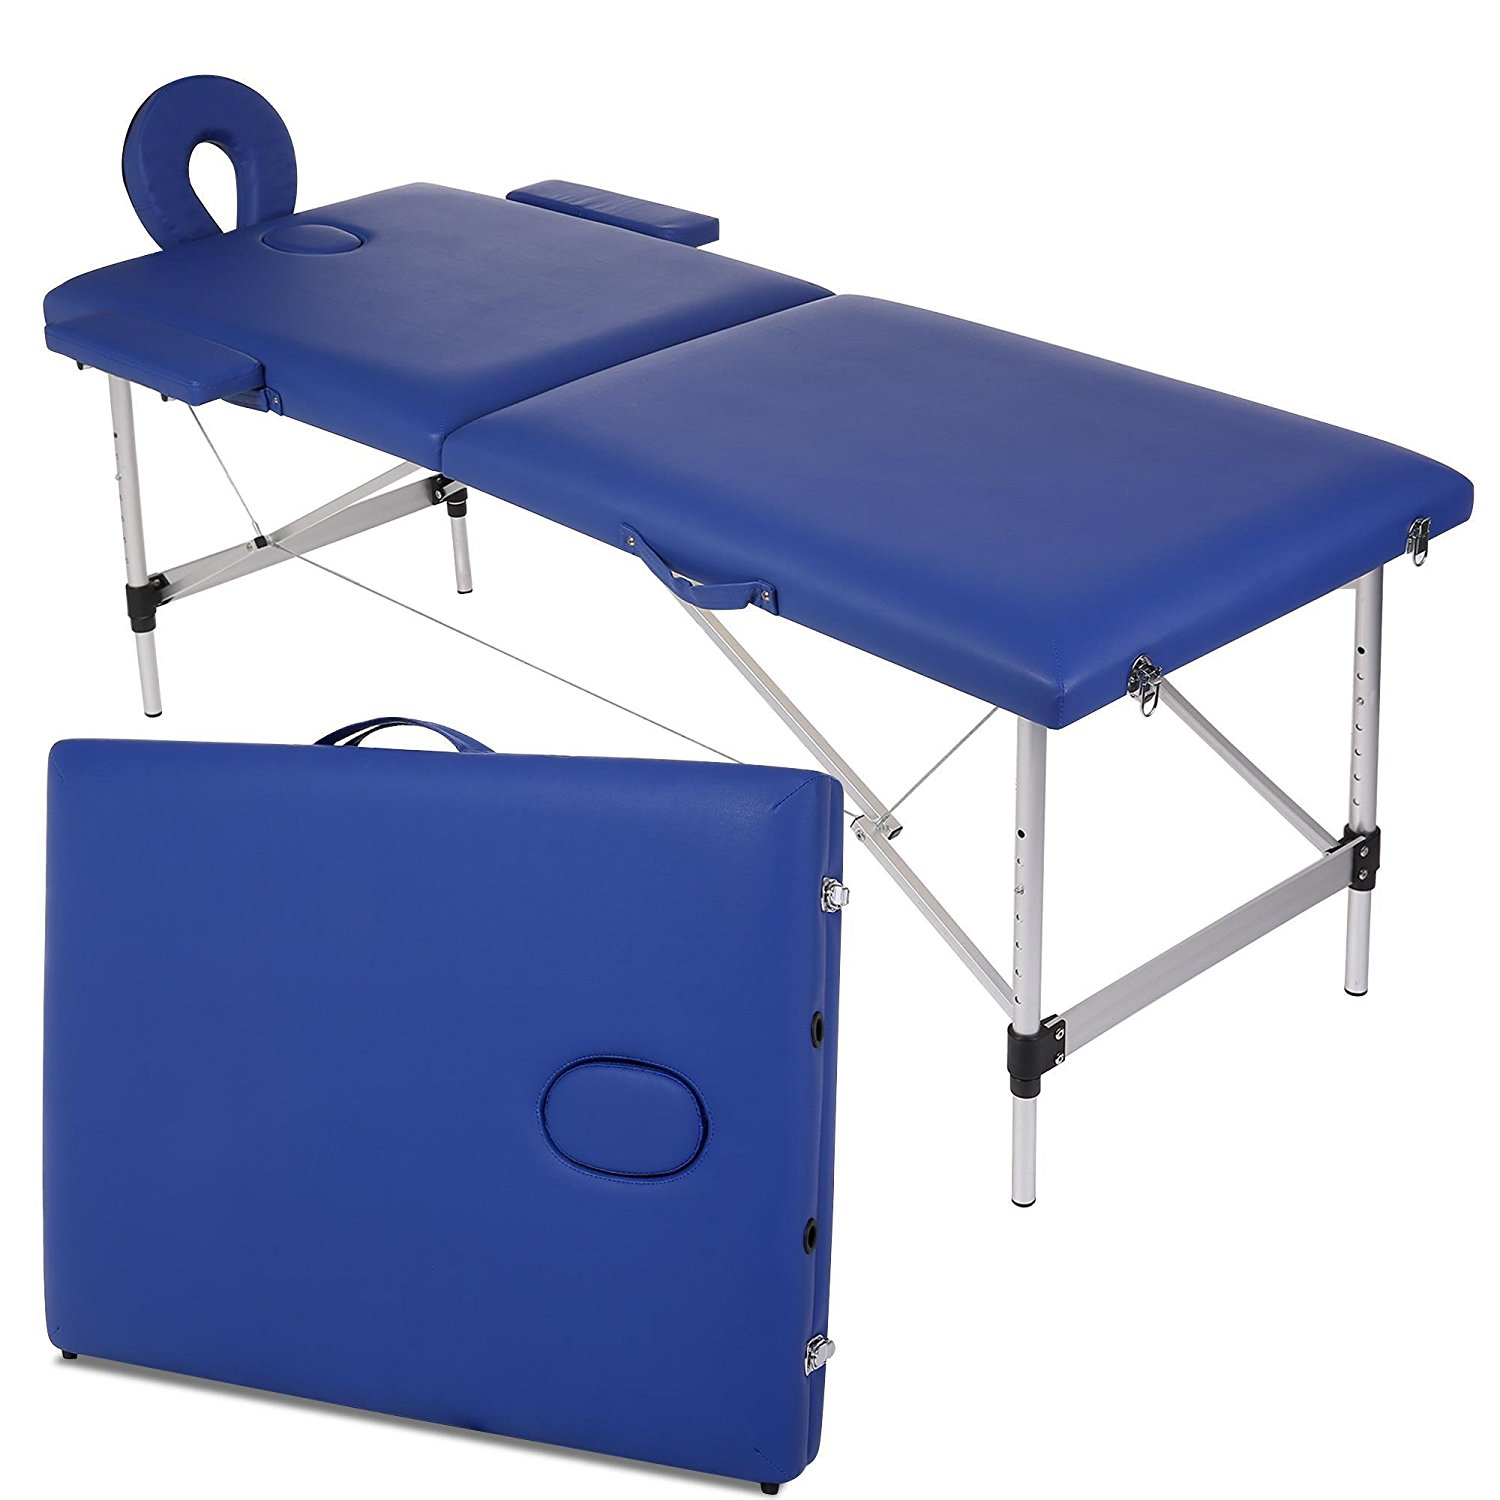 Portable Two-Fold Massage Table Adjustable Headrest Therapy Beauty Bed Couch Table Package Set for Spa Massage (Blue-Aluminum)